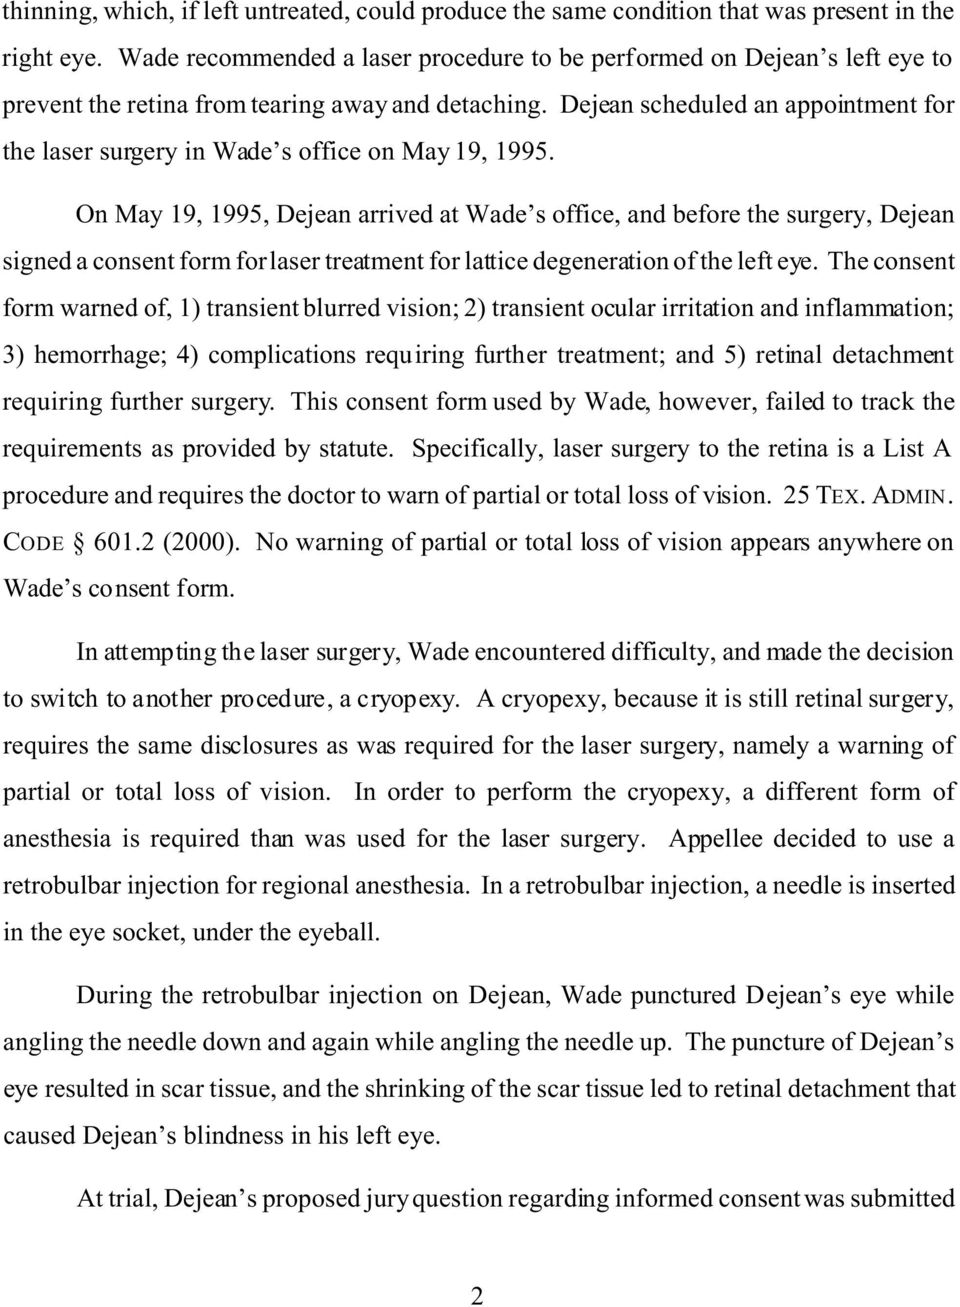 Dejean scheduled an appointment for the laser surgery in Wade s office on May 19, 1995.